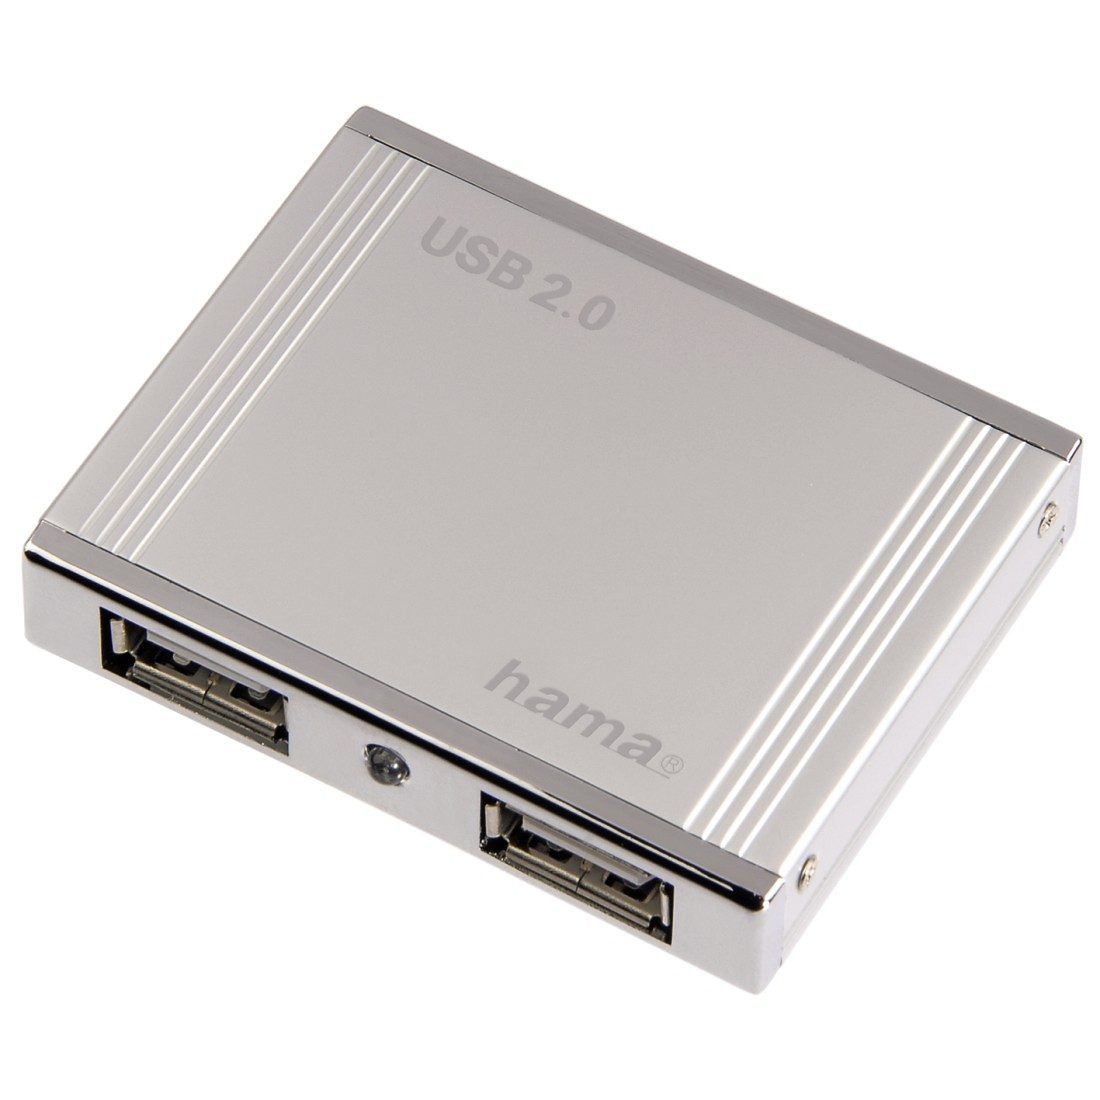 Hama USB-2.0-Hub 1:4 Aluminium, bus-powered, Silber